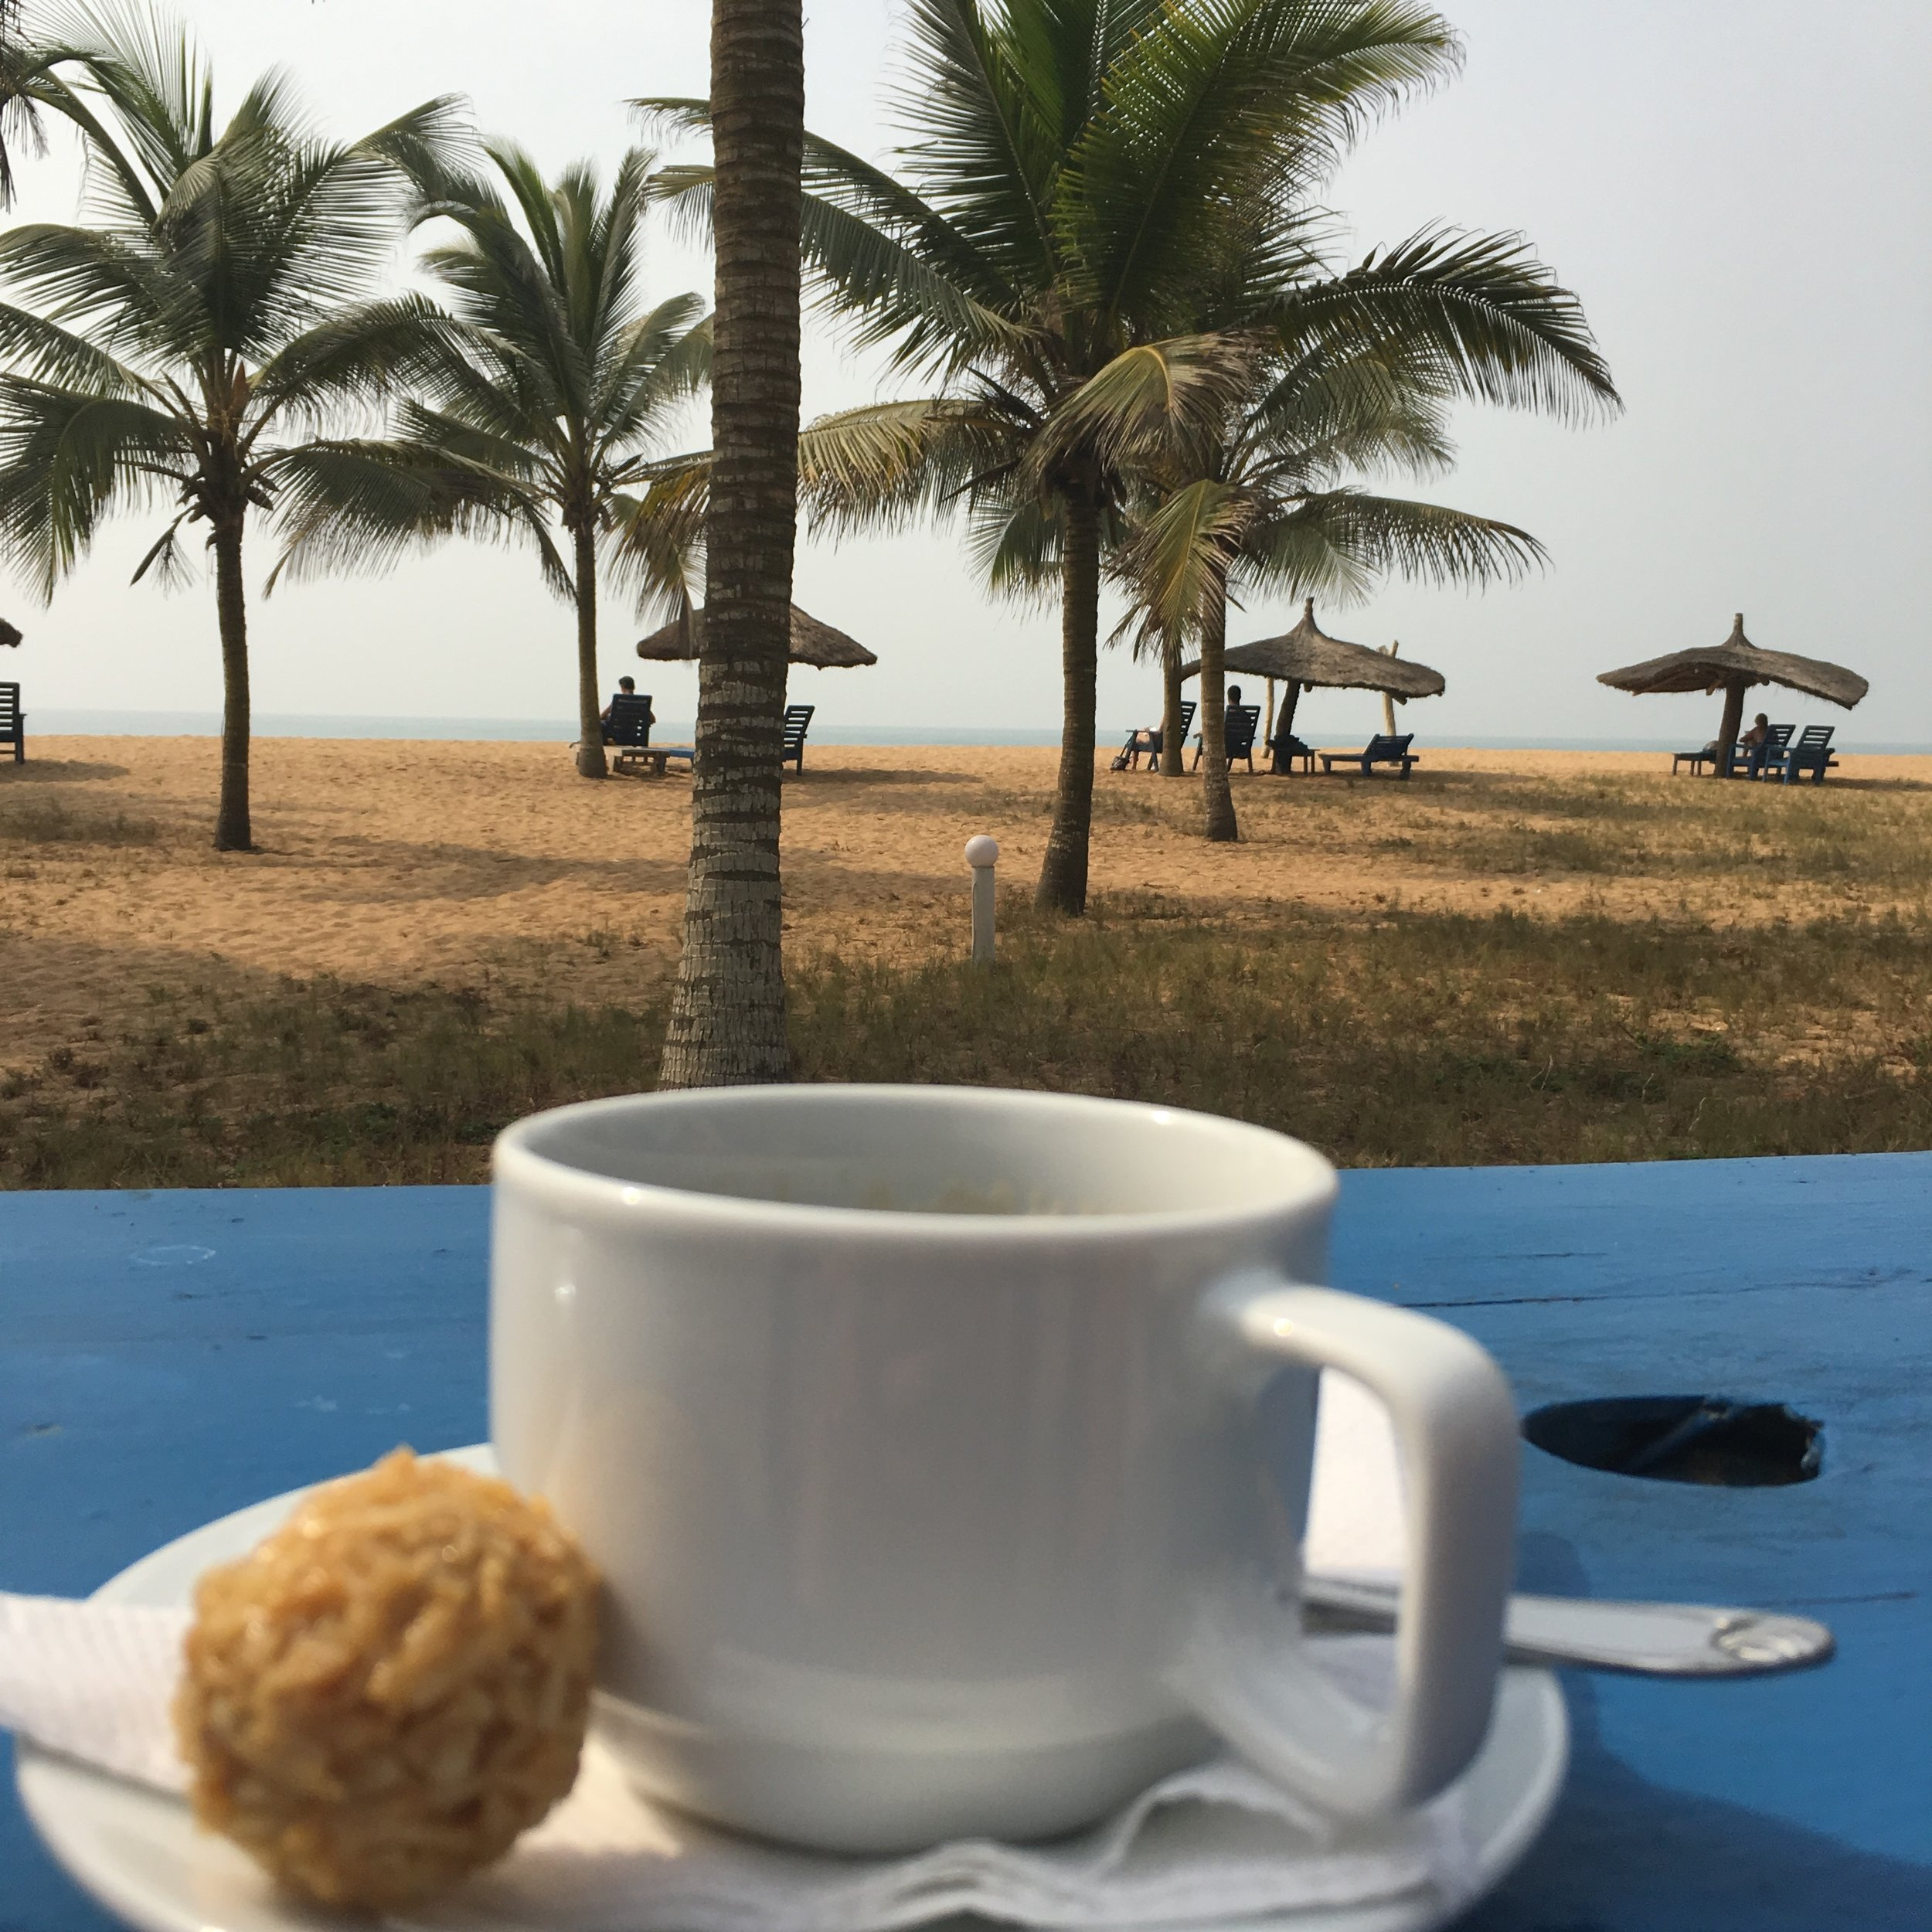 A great cup of coffee and a coconut macaroon at the Auberge in Grand Popo, Benin.